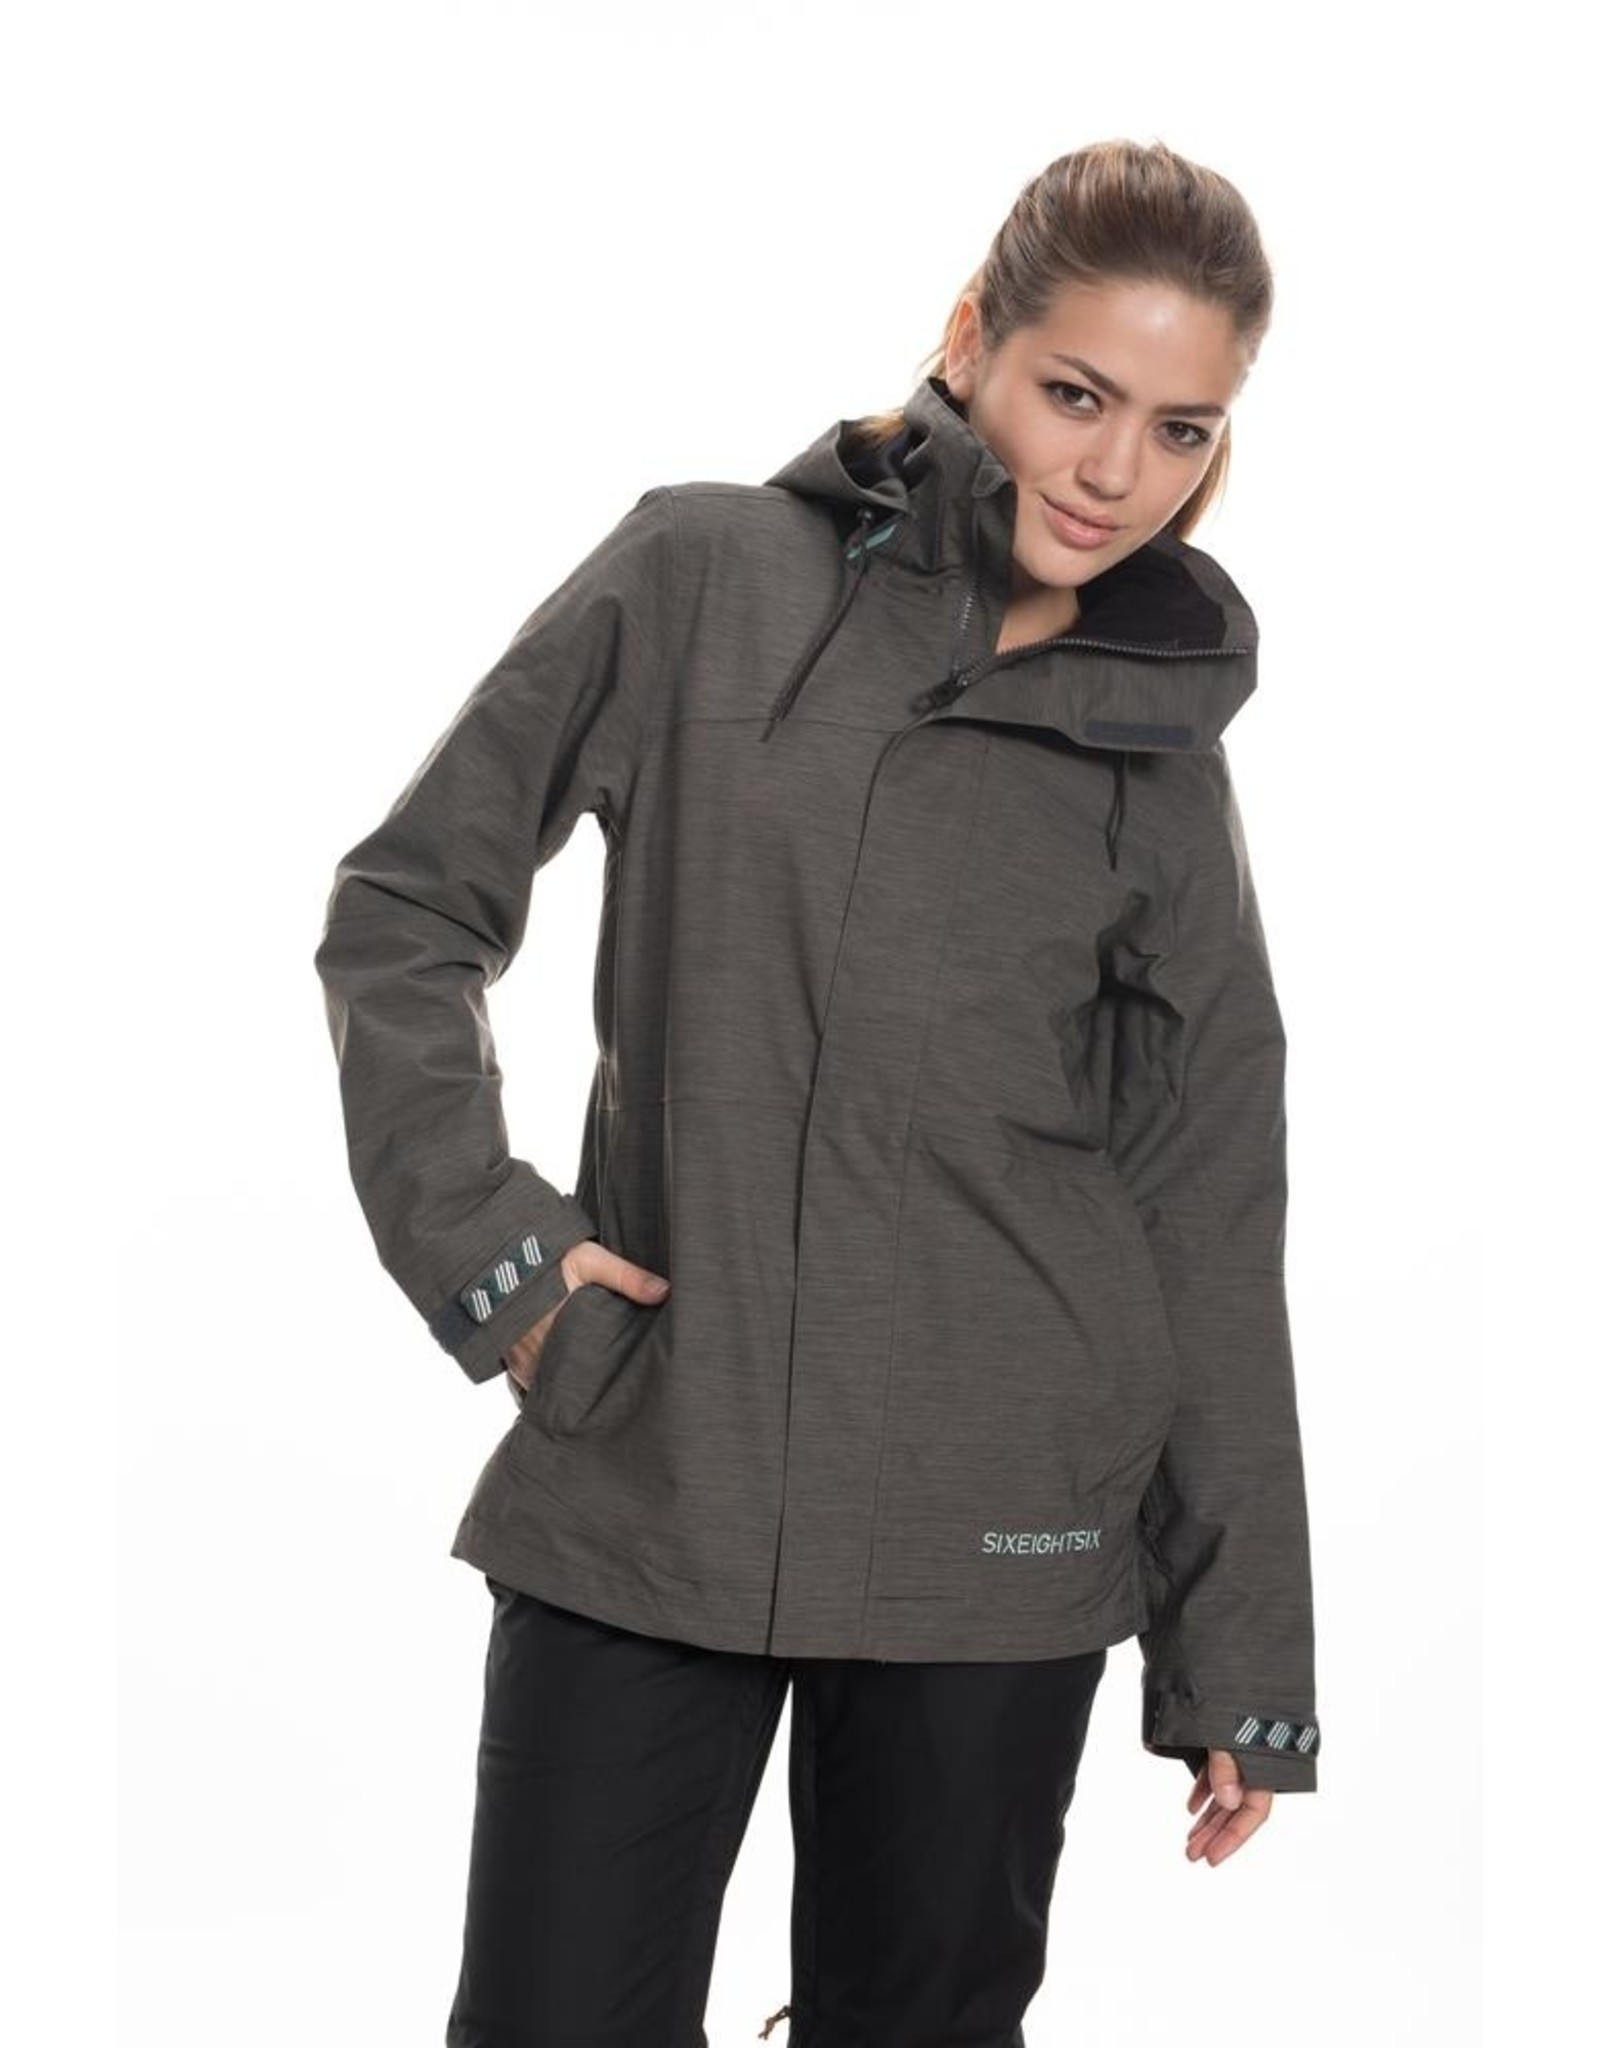 686 686 - SMARTY SPELLBOUND JACKET - 19/20 - CHARCOAL HEATHER